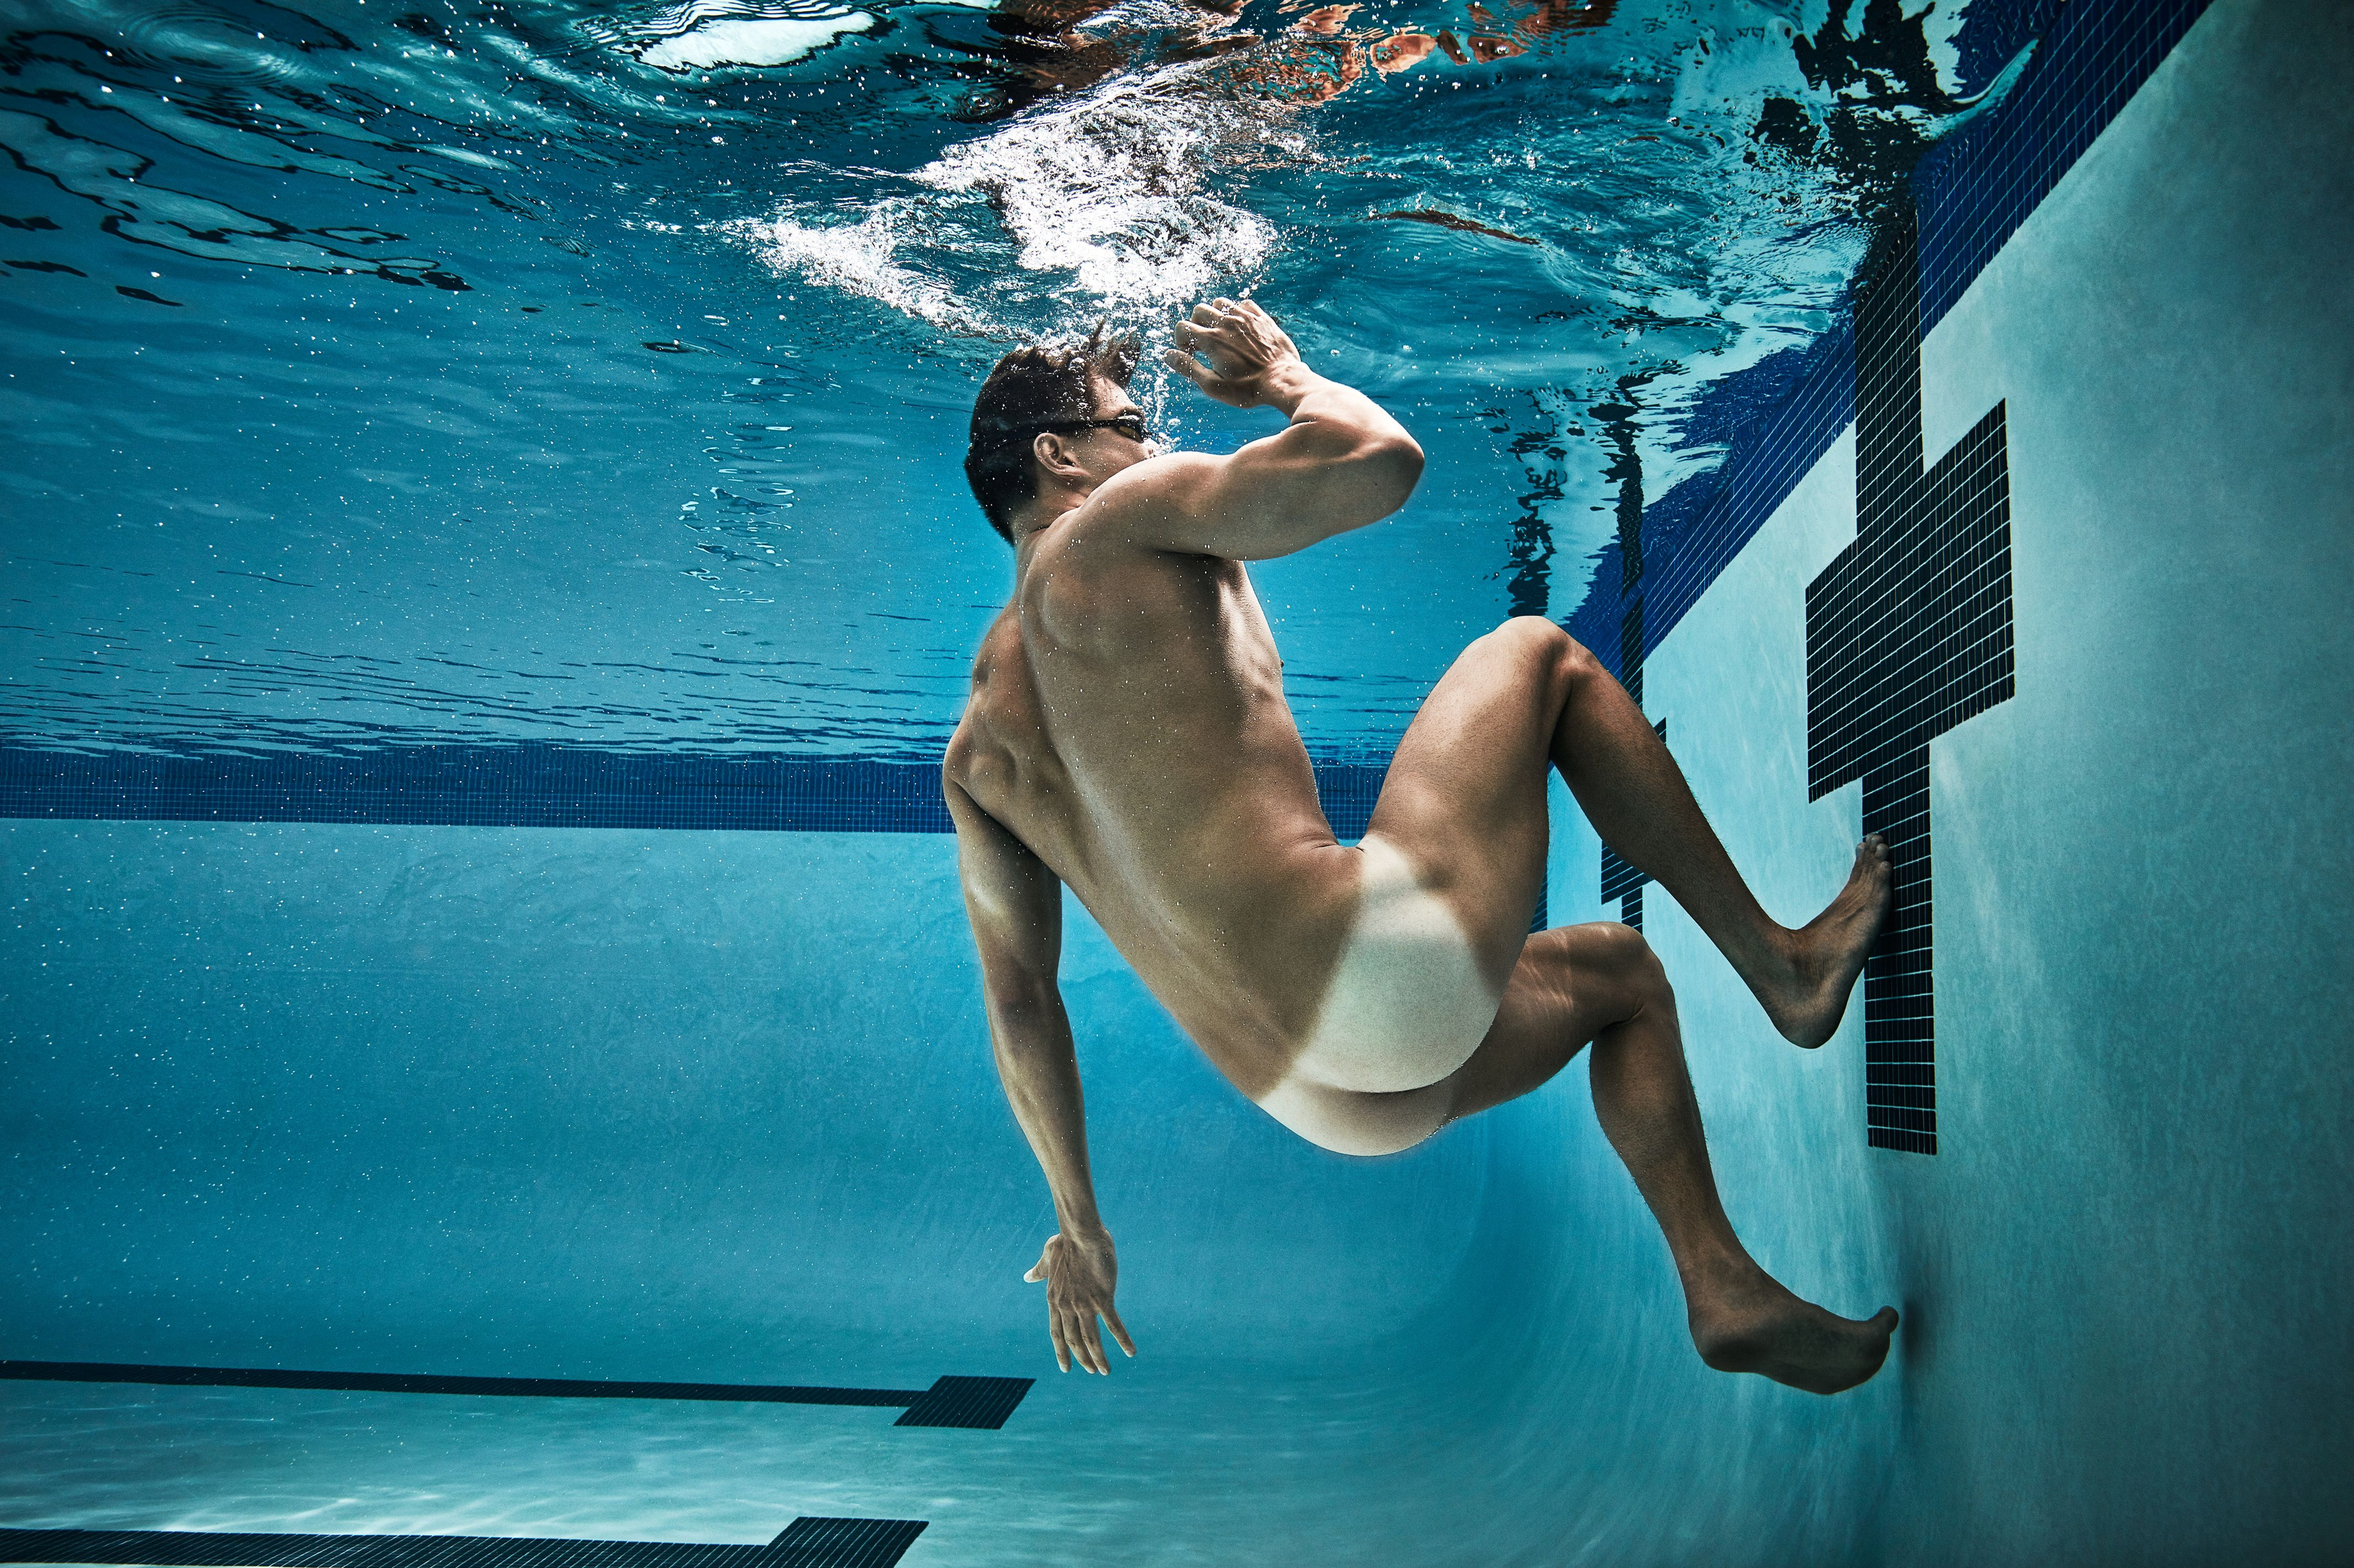 Nude athletic guy in the pool